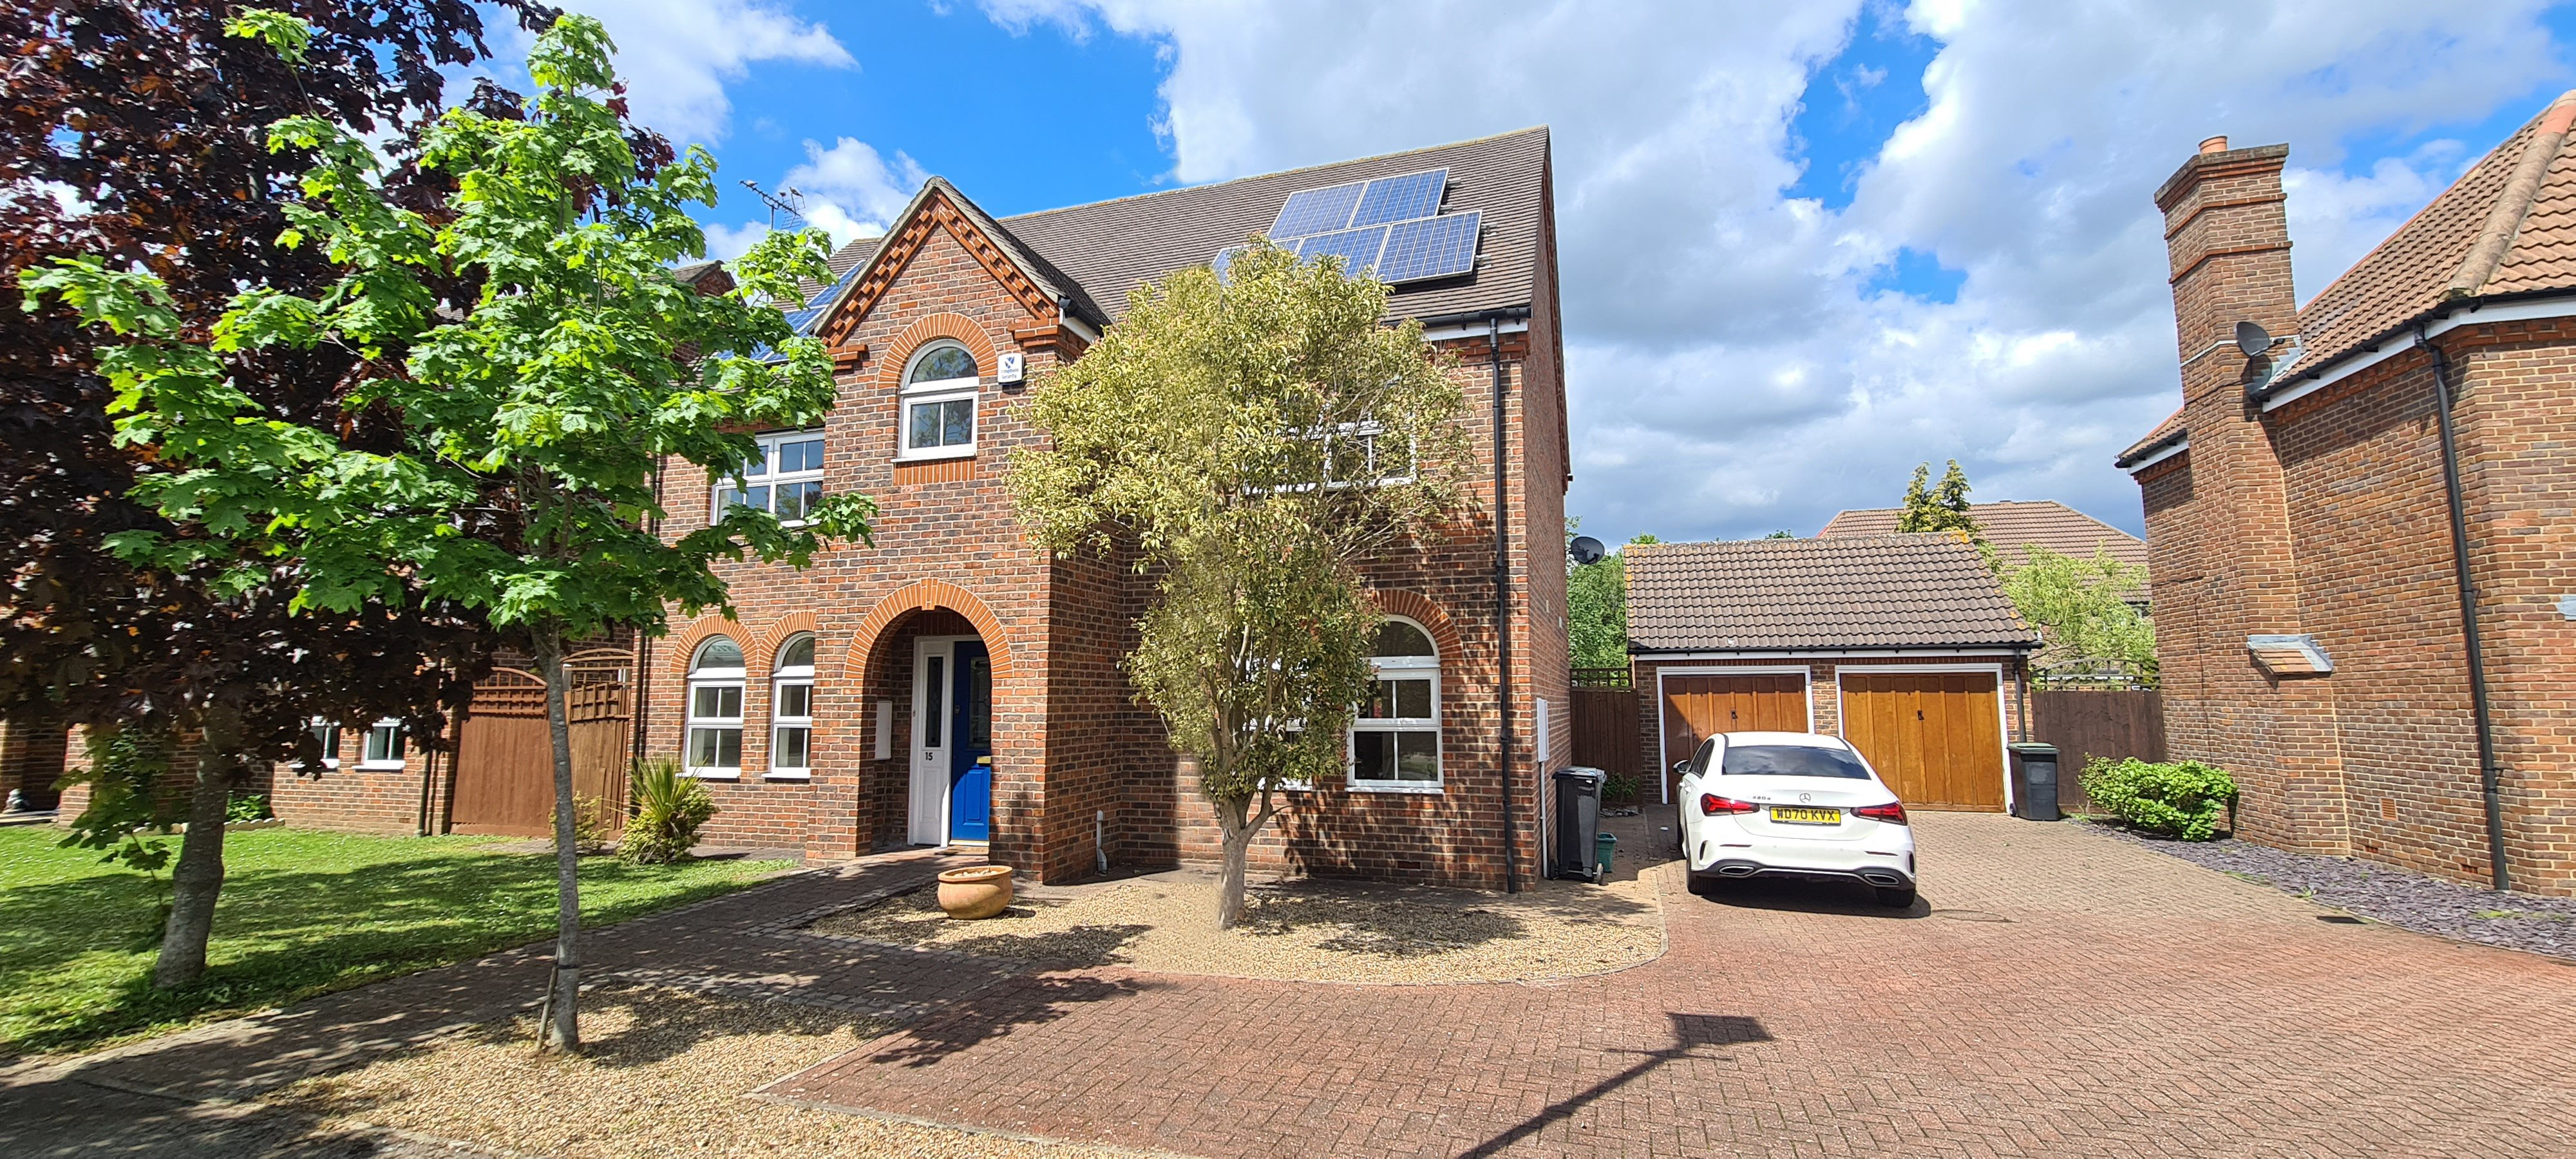 4 bed detached house to rent, Waltham Abbey 0